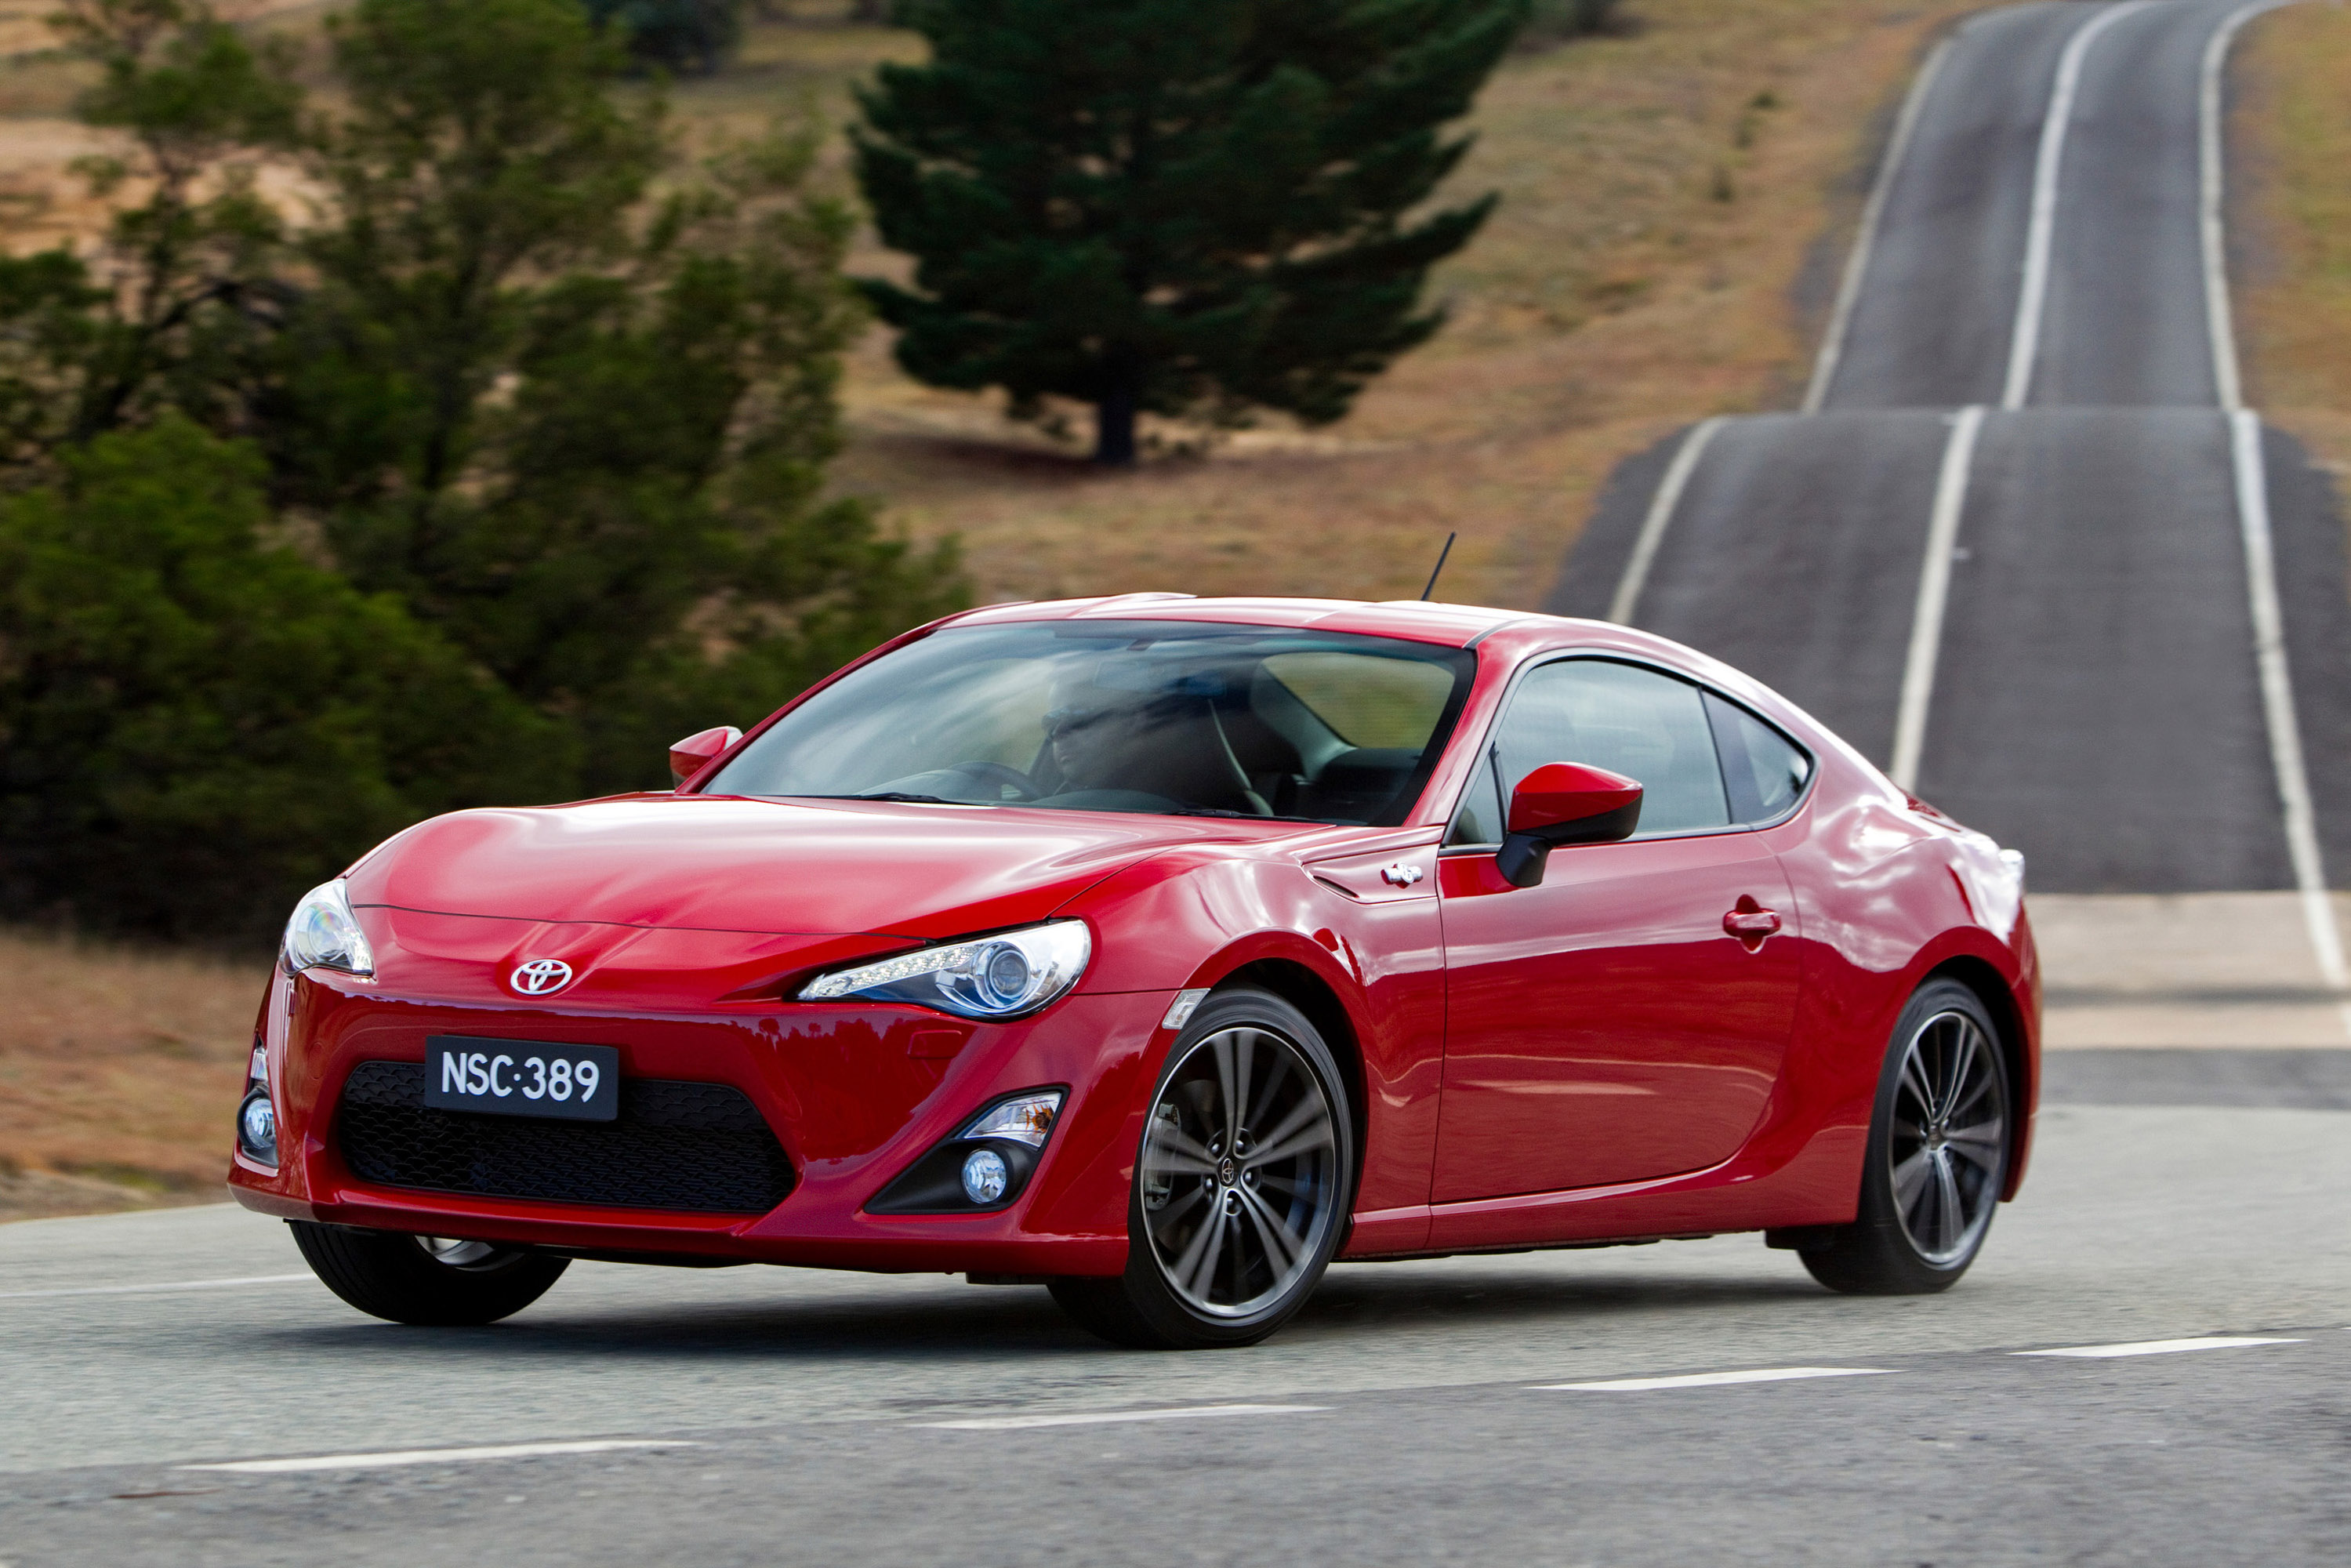 Full Hd Car Wallpapers 2014 Toyota 86 Gt To Be Equipped With Torsen Limited Slip